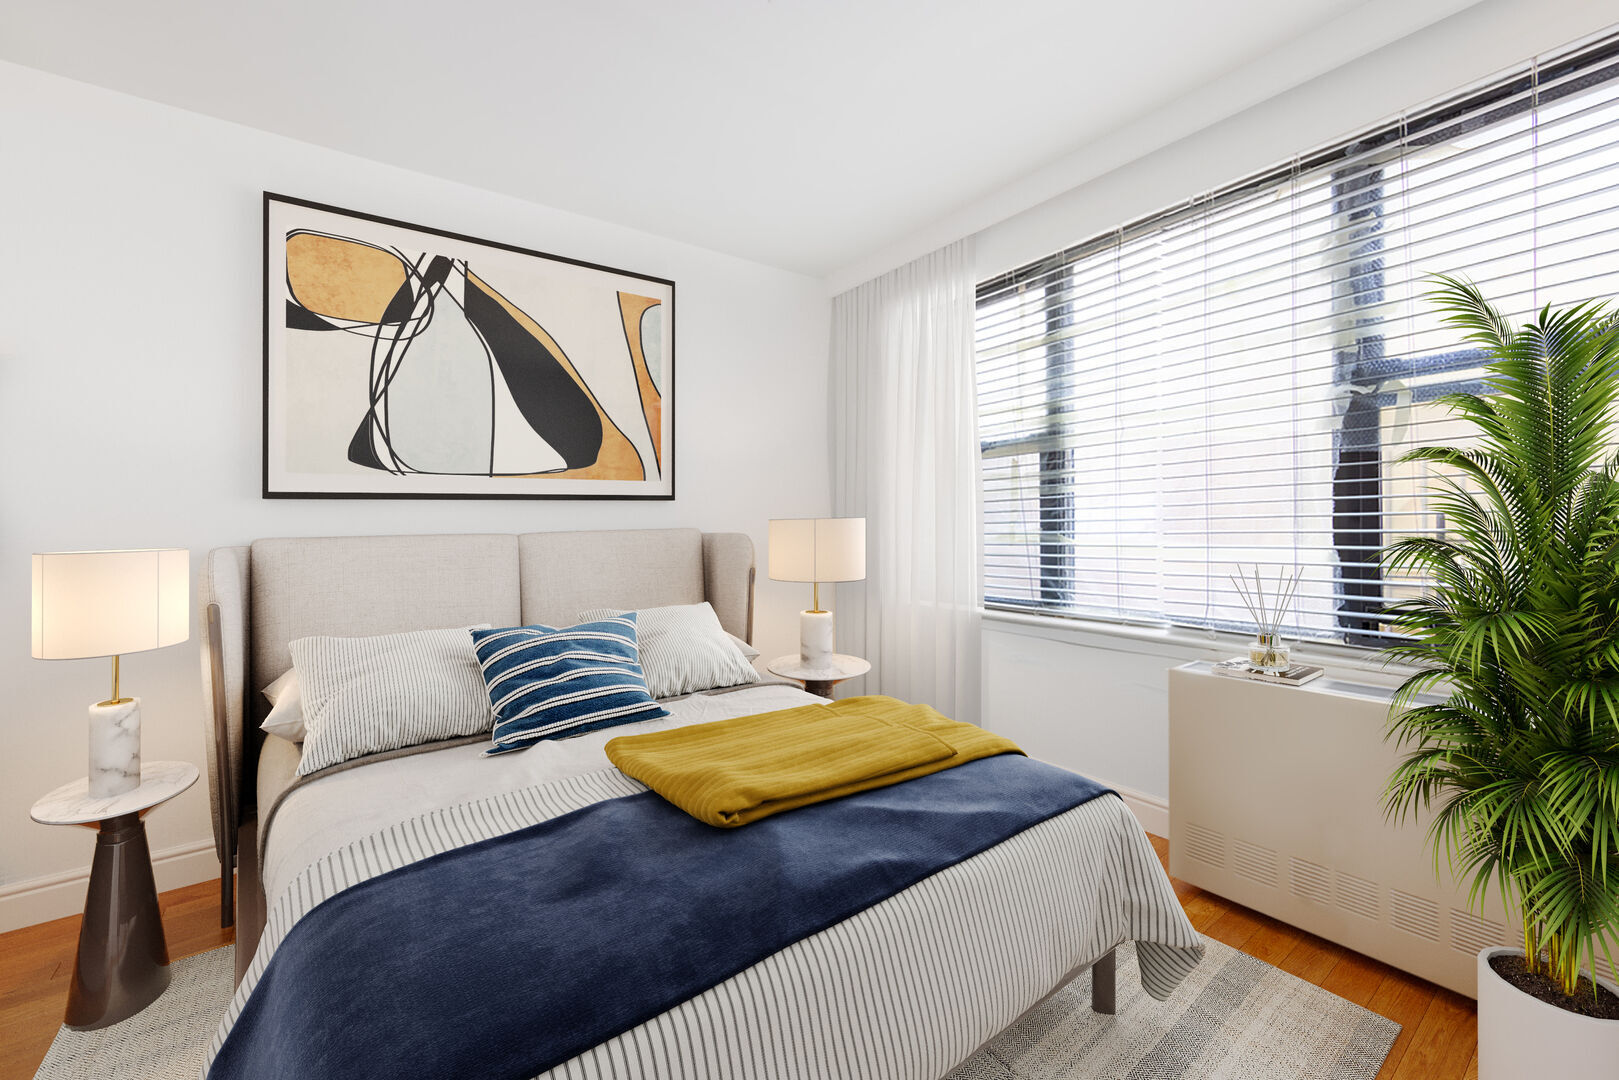 Apartment for sale at 417-421 East 90th Street, Apt 4-G